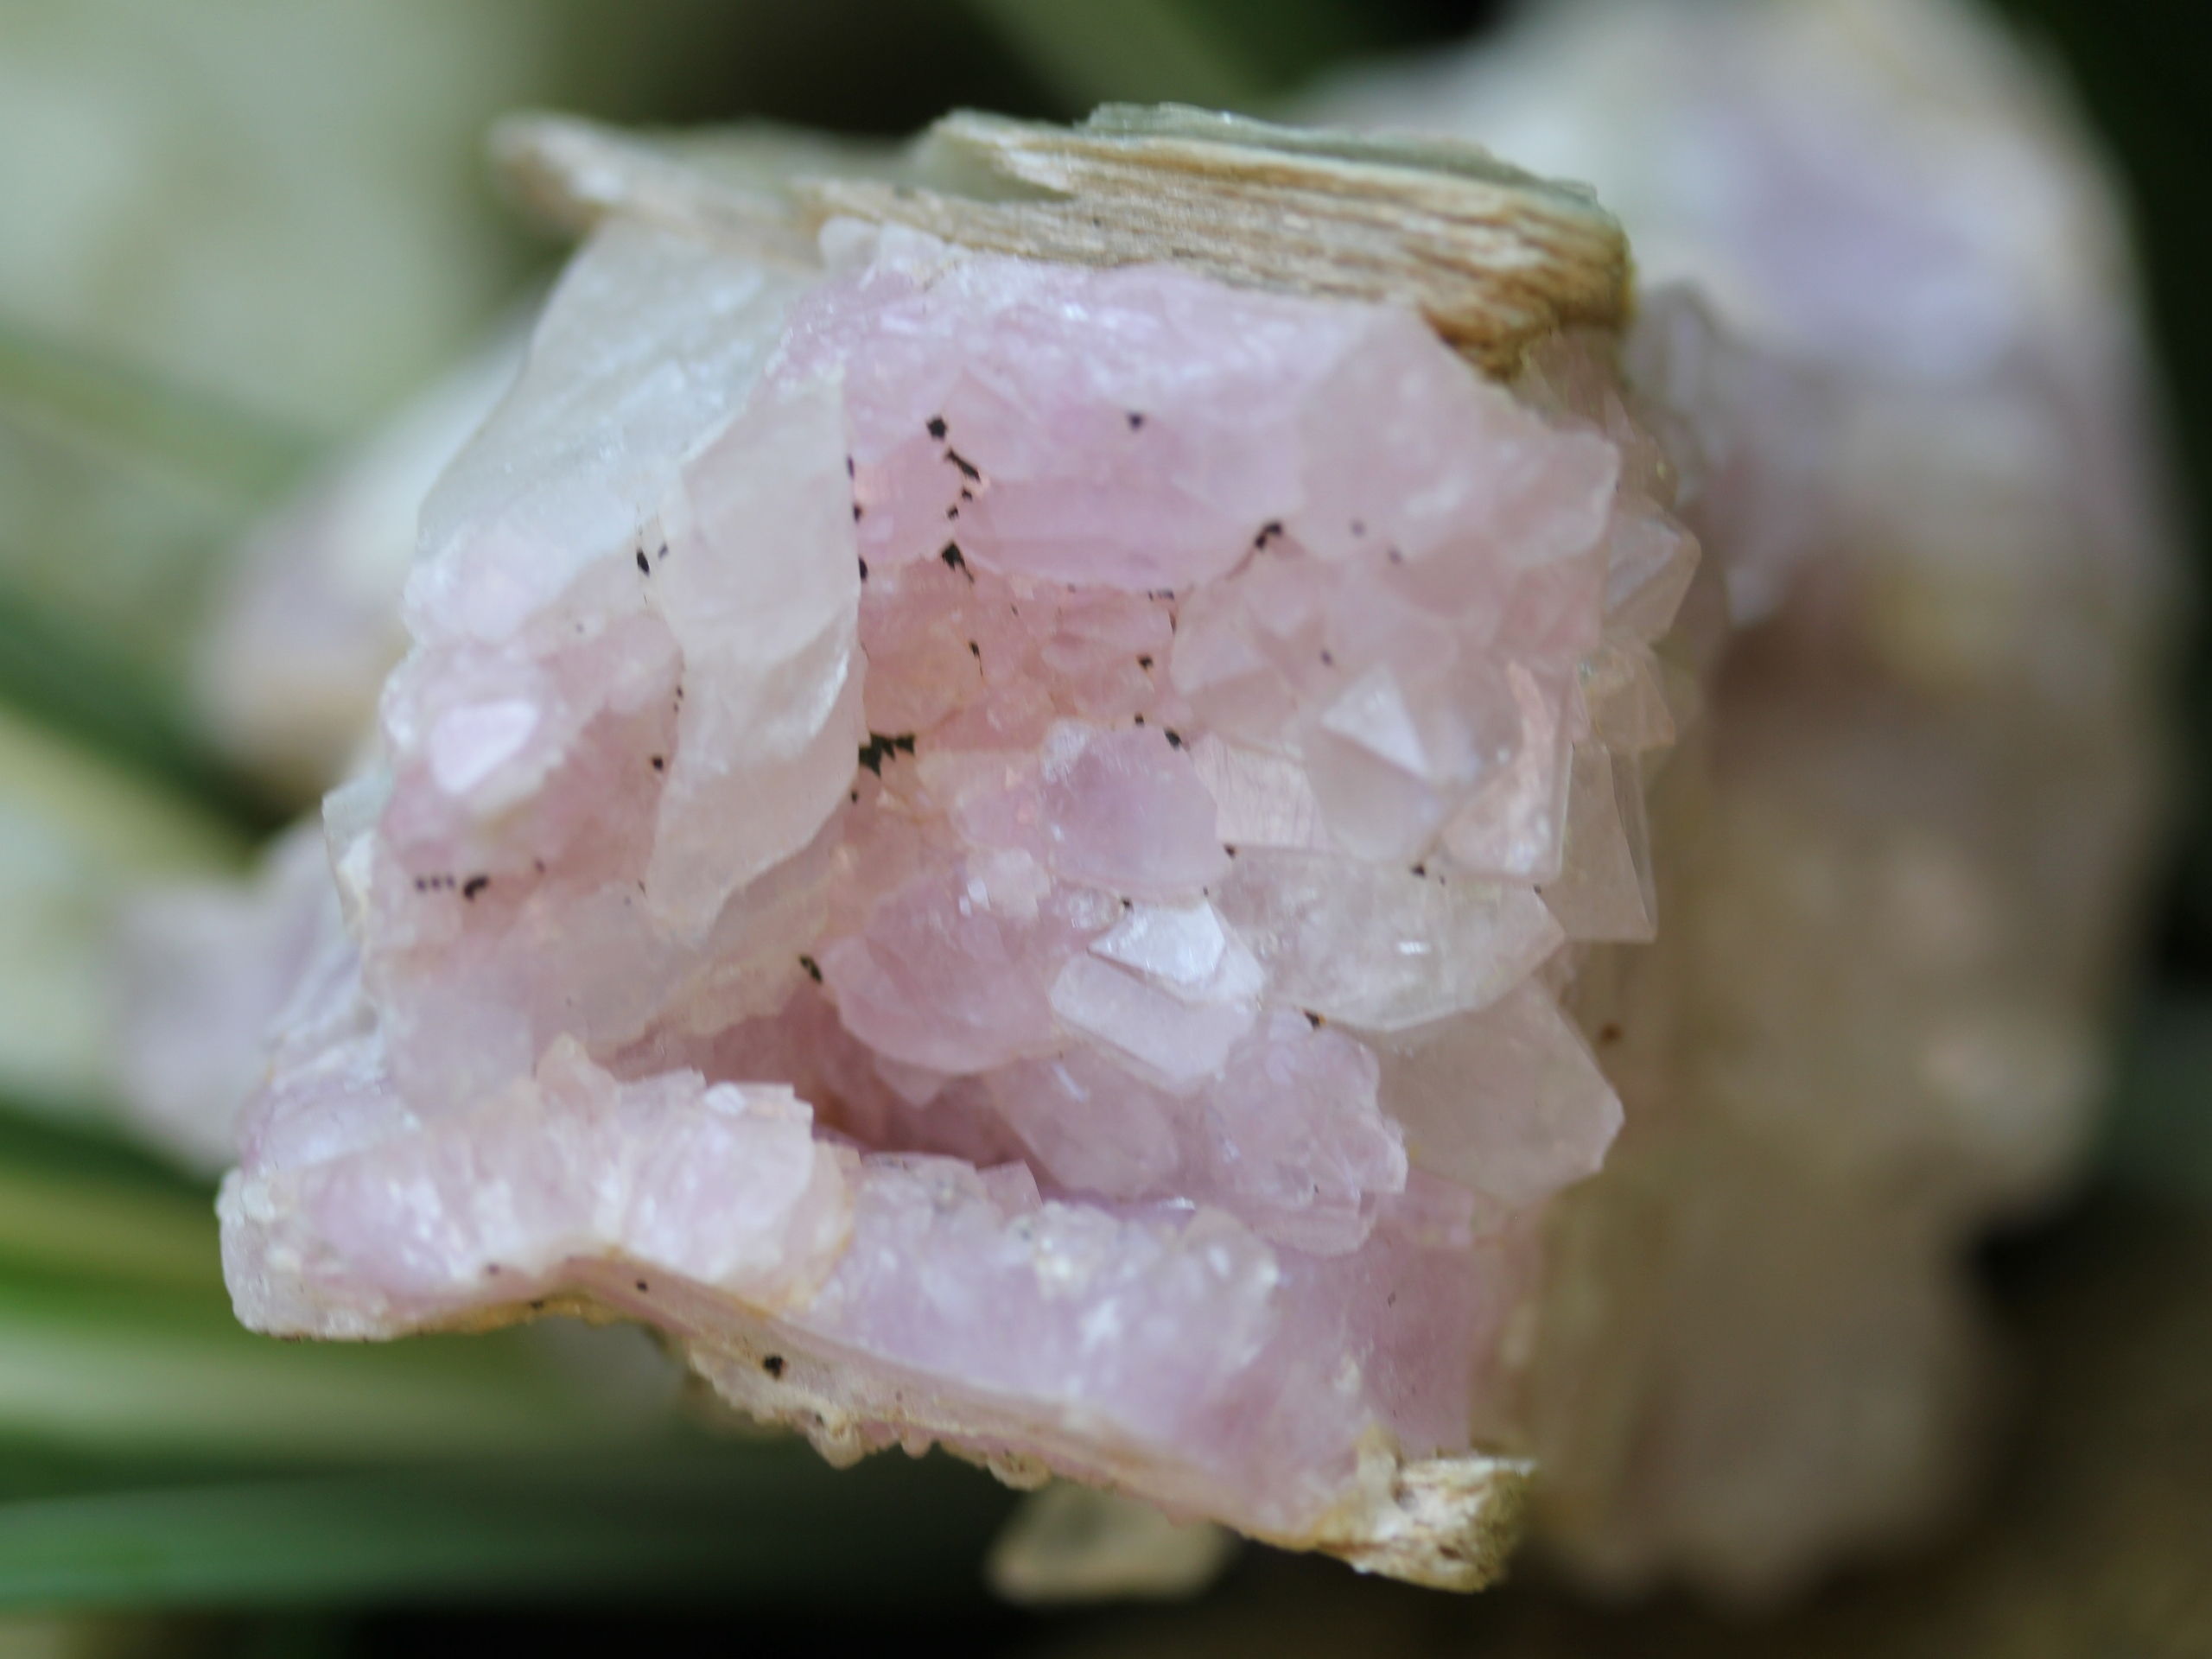 Light-colored rose quartz crystals